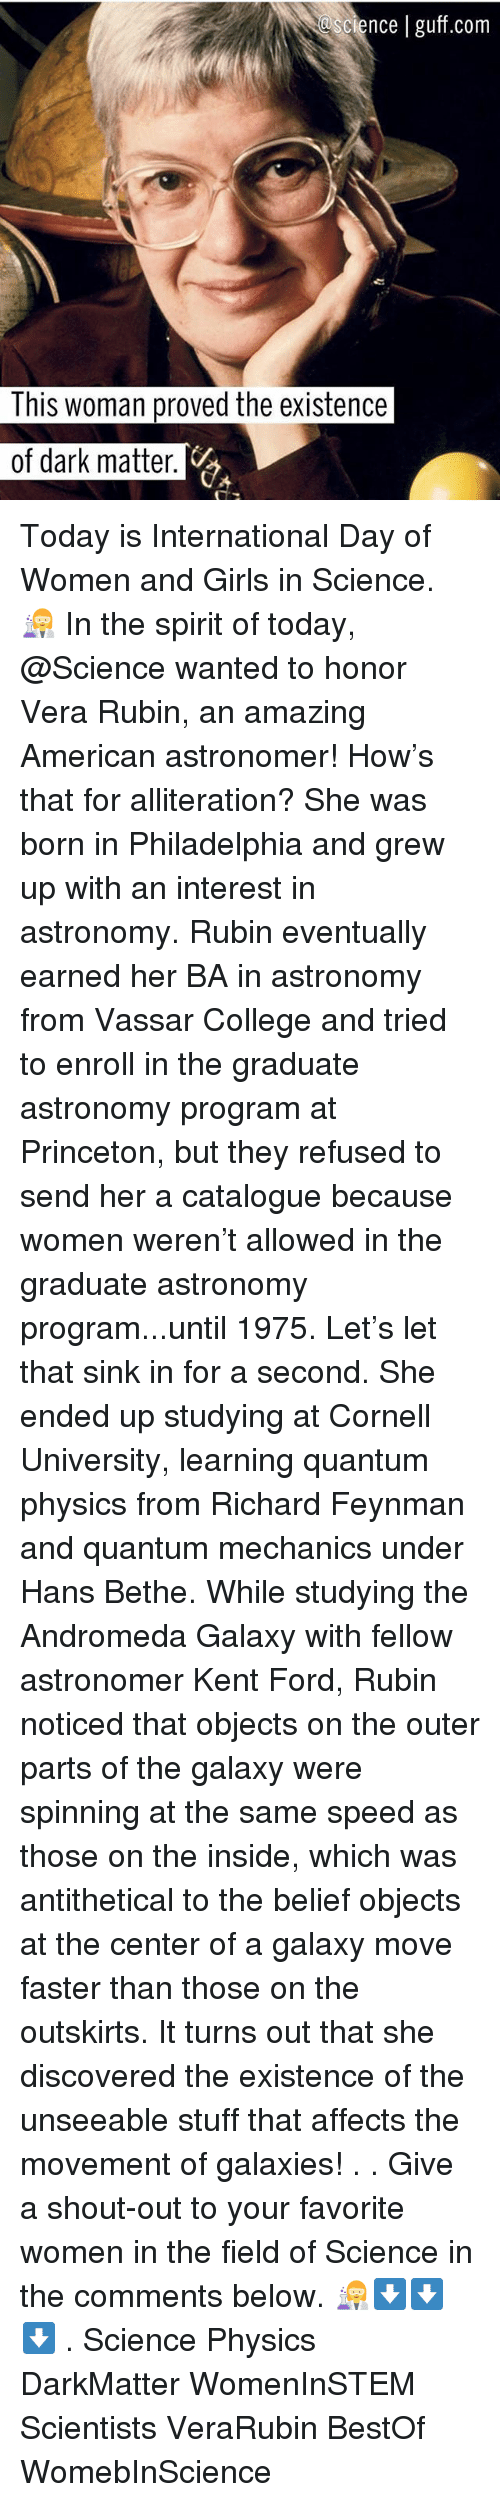 College, Girls, and Memes: cience | guff.com  This woman proved the existence  of dark matter Today is International Day of Women and Girls in Science. 👩🔬 In the spirit of today, @Science wanted to honor Vera Rubin, an amazing American astronomer! How's that for alliteration? She was born in Philadelphia and grew up with an interest in astronomy. Rubin eventually earned her BA in astronomy from Vassar College and tried to enroll in the graduate astronomy program at Princeton, but they refused to send her a catalogue because women weren't allowed in the graduate astronomy program...until 1975. Let's let that sink in for a second. She ended up studying at Cornell University, learning quantum physics from Richard Feynman and quantum mechanics under Hans Bethe. While studying the Andromeda Galaxy with fellow astronomer Kent Ford, Rubin noticed that objects on the outer parts of the galaxy were spinning at the same speed as those on the inside, which was antithetical to the belief objects at the center of a galaxy move faster than those on the outskirts. It turns out that she discovered the existence of the unseeable stuff that affects the movement of galaxies! . . Give a shout-out to your favorite women in the field of Science in the comments below. 👩🔬⬇️⬇️⬇️ . Science Physics DarkMatter WomenInSTEM Scientists VeraRubin BestOf WomebInScience